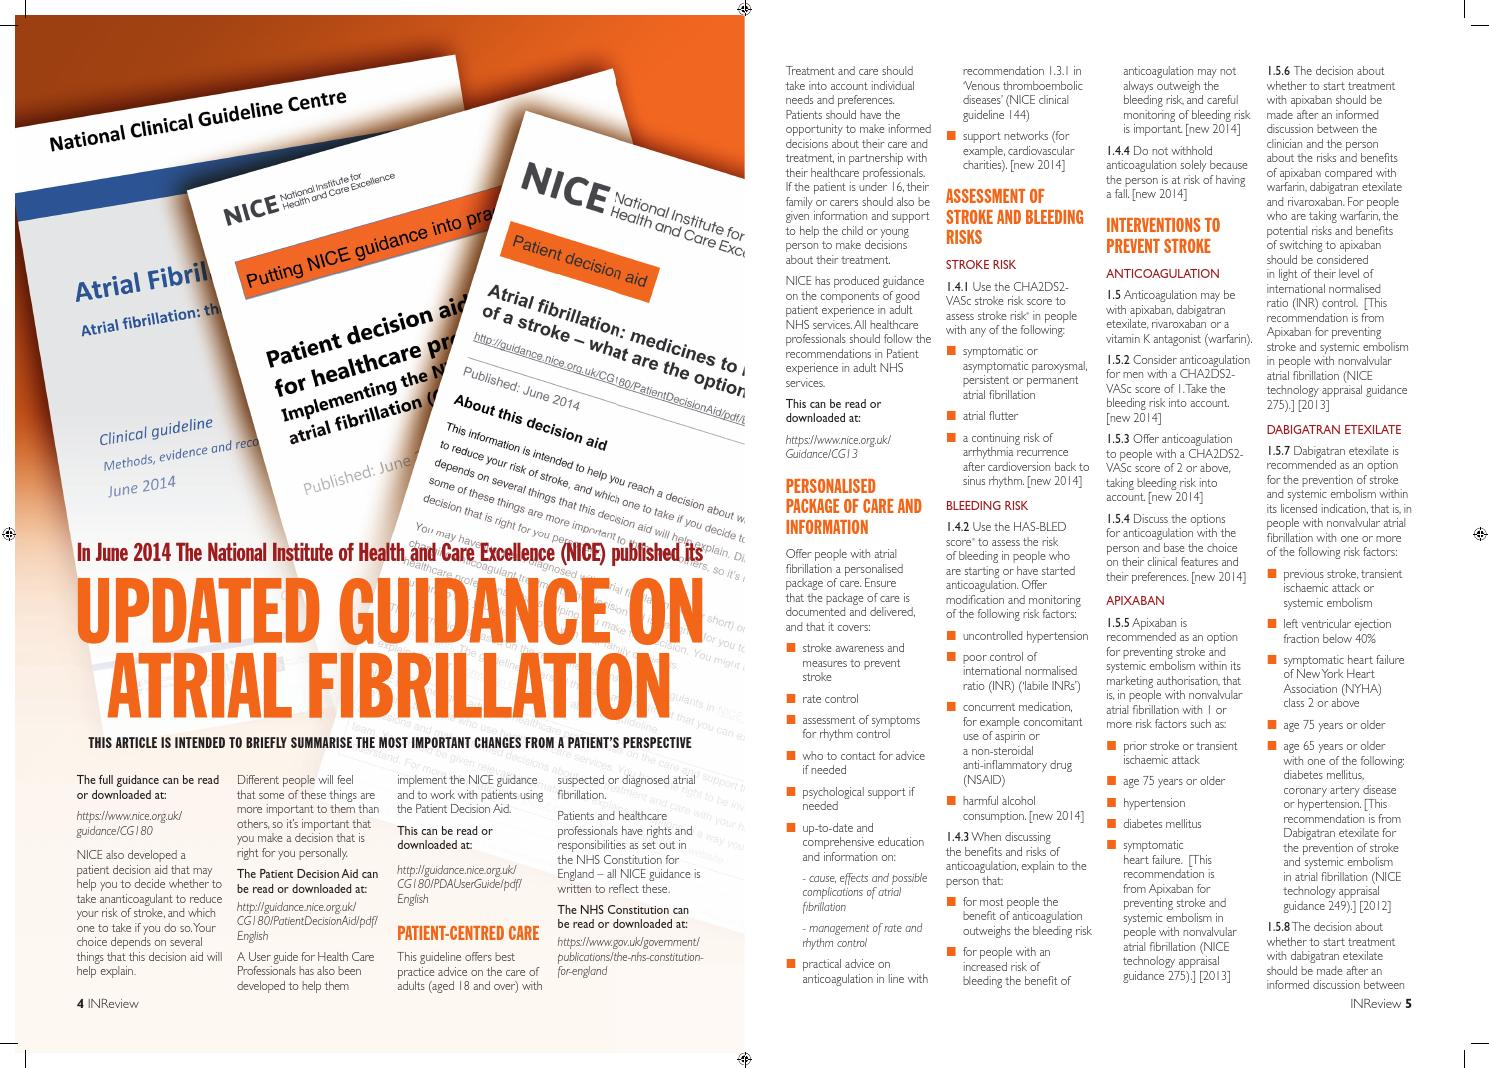 Summary nice updated guidance on atrial fibrillation june